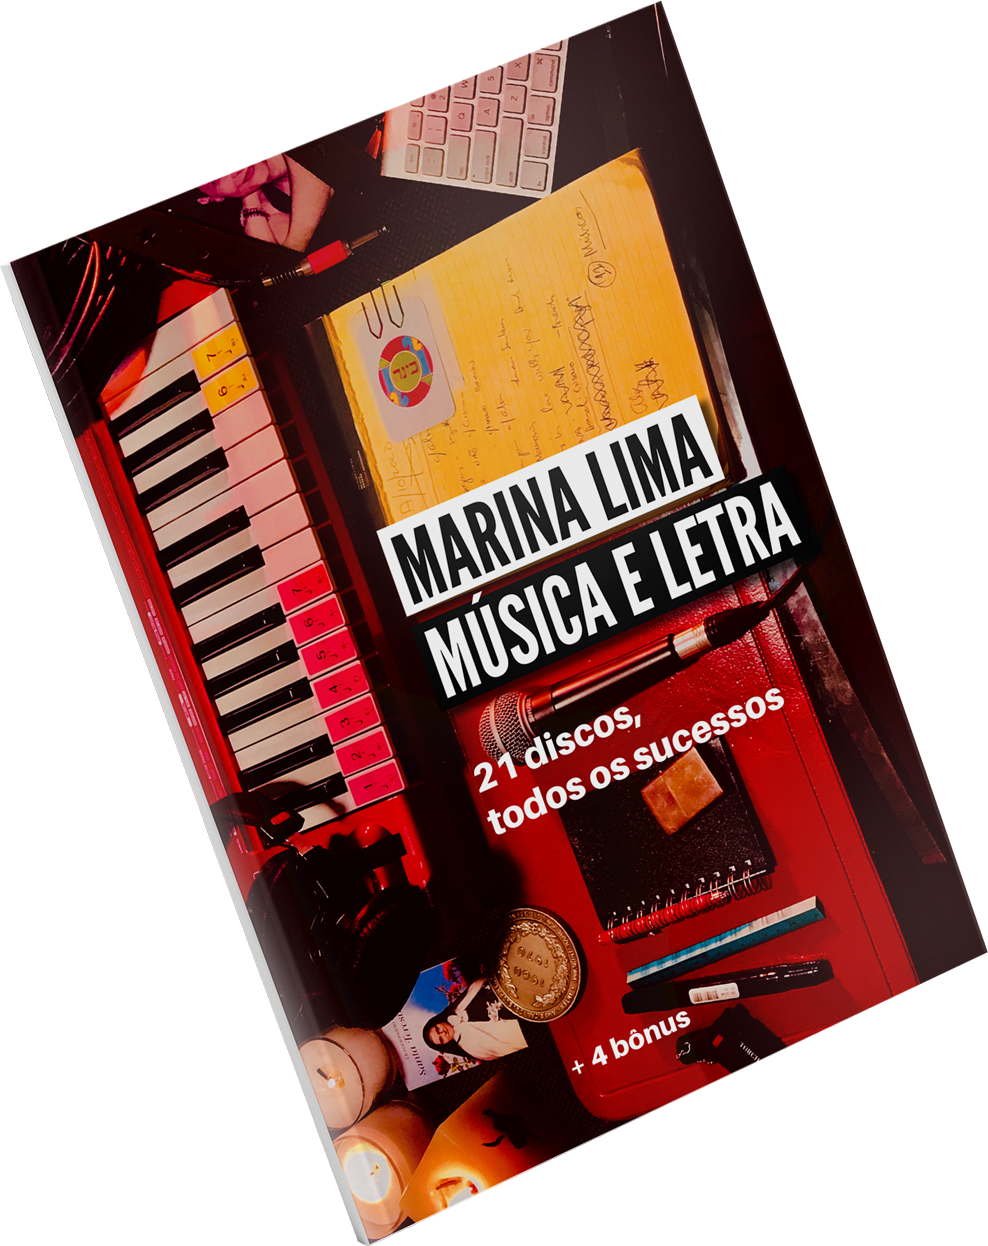 https://marinalima.com.br/wp-content/uploads/2021/02/songbook-2.png